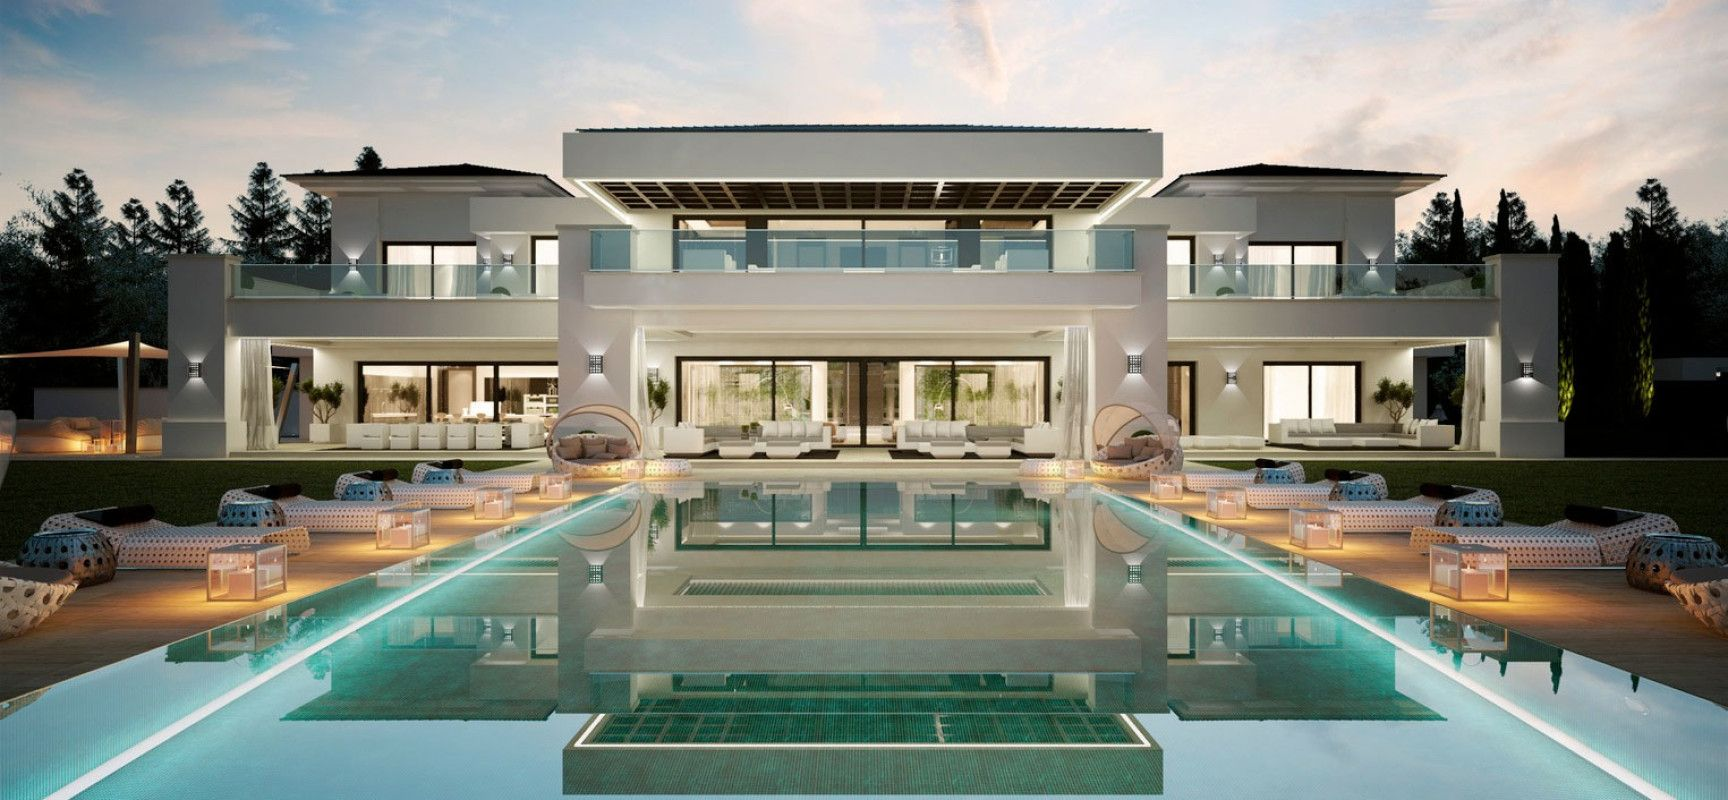 spanish luxury villas Googlesk home Pinterest Luxury villa